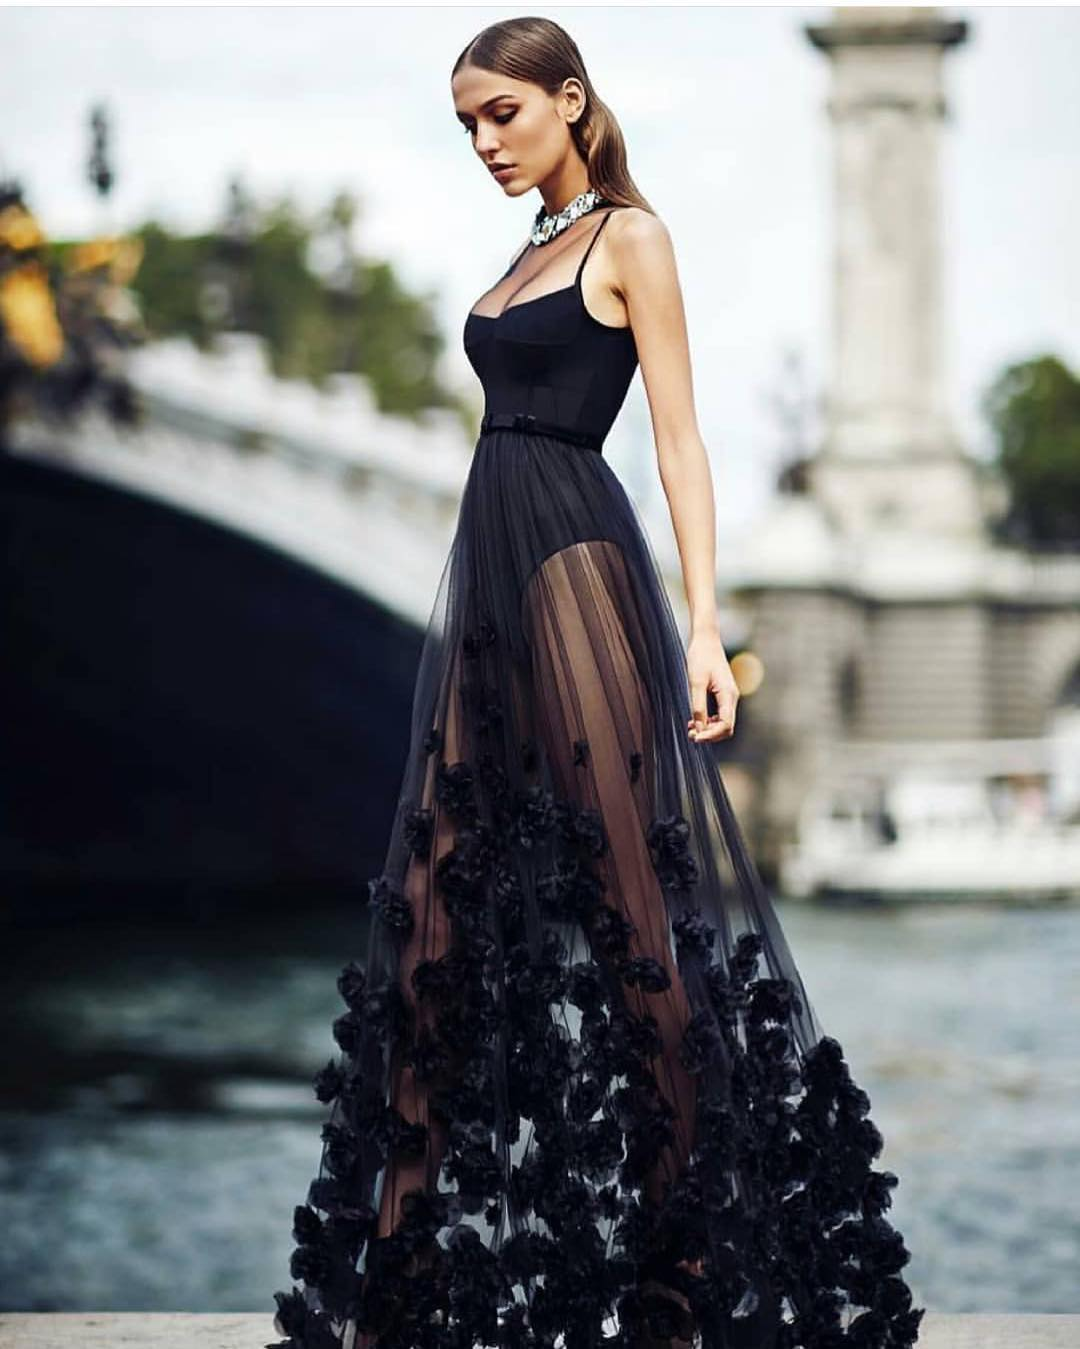 Black Bodysuit With Black Sheer Maxi Skirt For Special Evening Parties 2021